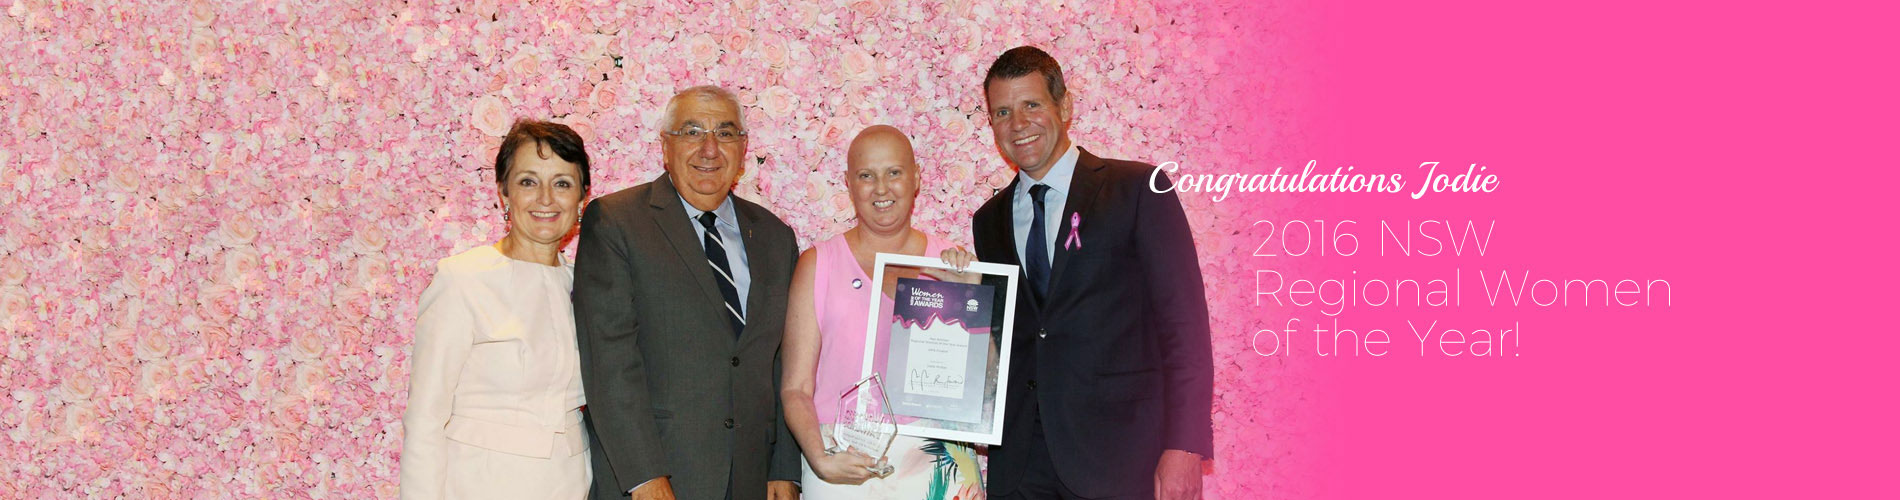 jodie mcrae woman of the year nsw